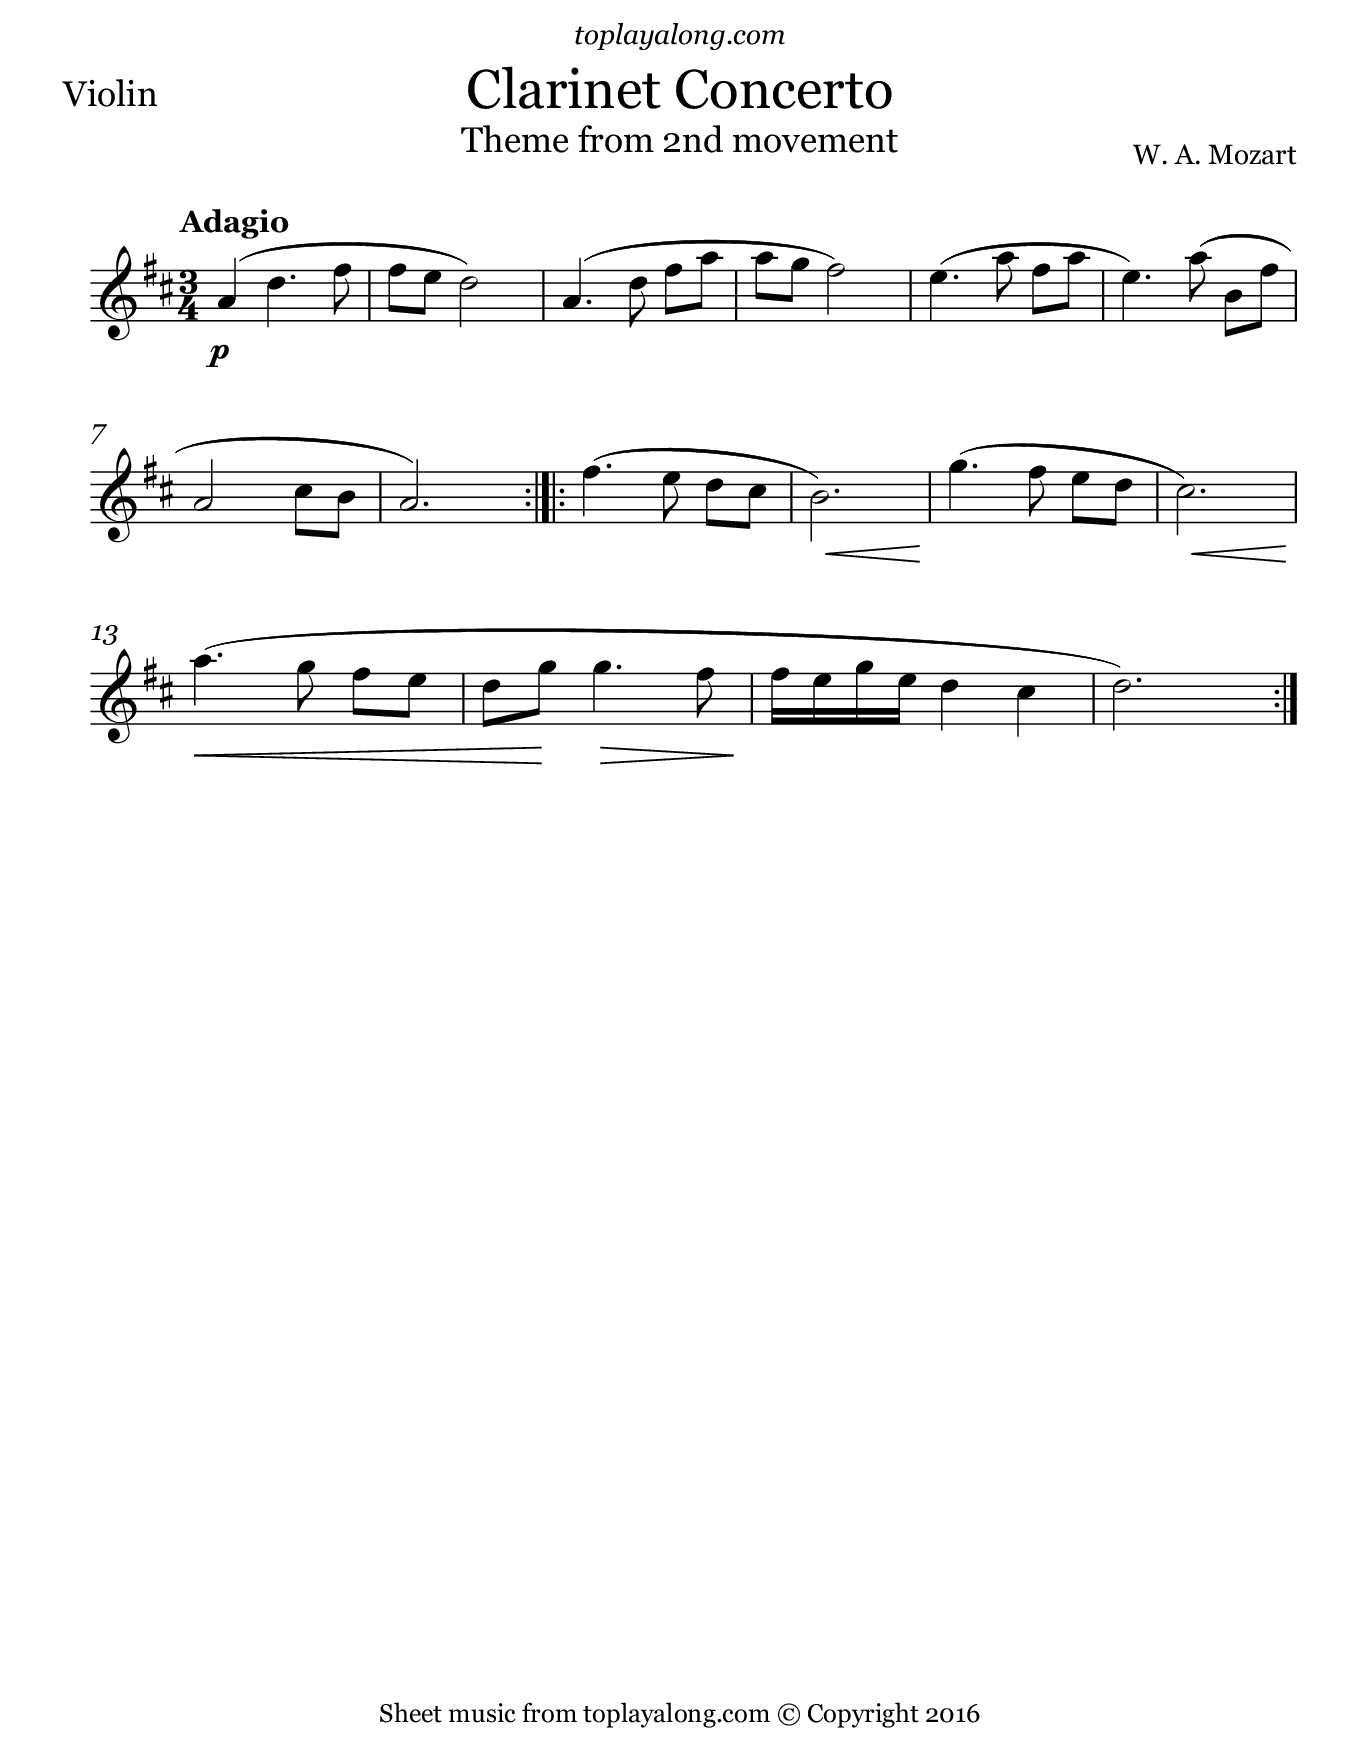 Clarinet Concerto 2nd mvt. (Theme) by Mozart. Sheet music for Violin, page 1.